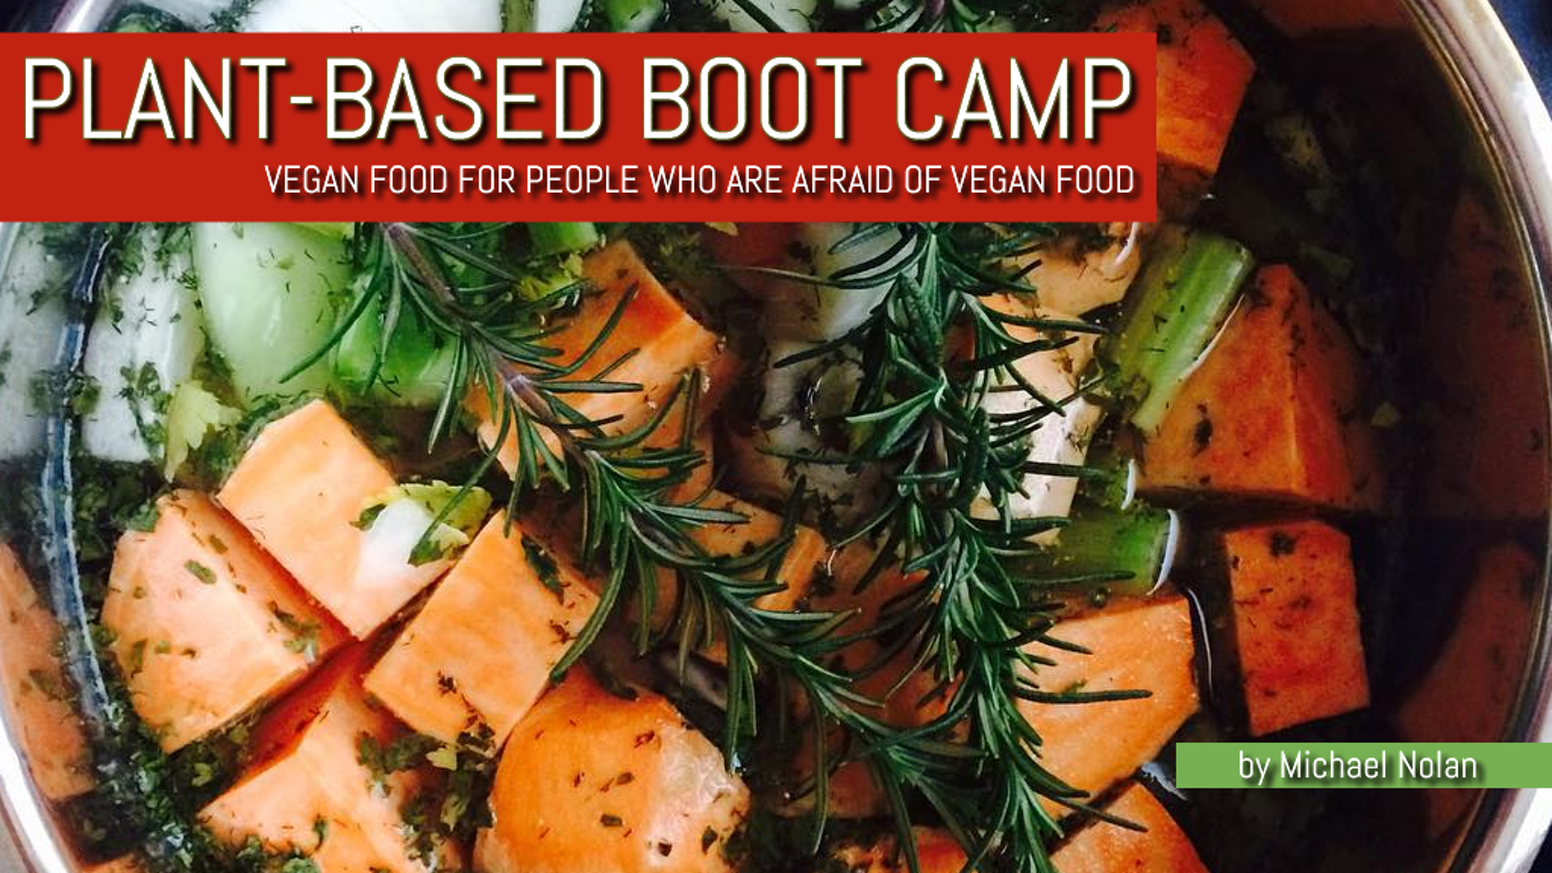 Plant based boot camp vegan cookbook project by michael nolan plant based boot camp is the vegan cookbook for people who are afraid of vegan food over 200 delicious recipes with full color photos forumfinder Choice Image